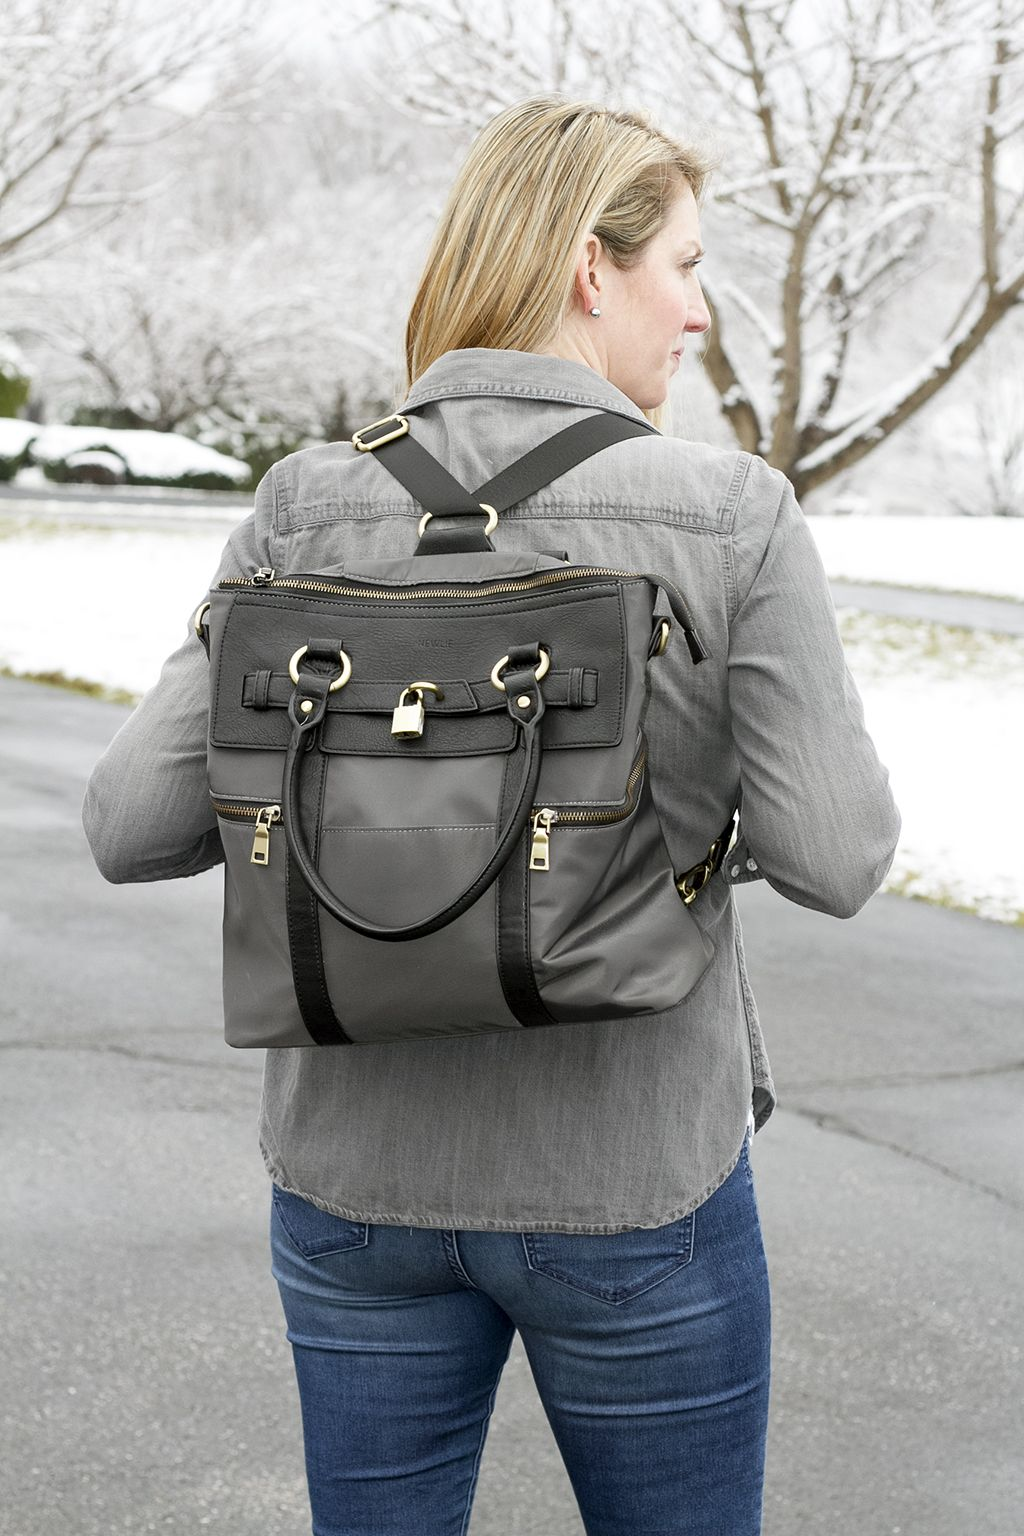 Convertible Backpack Diaper Bag Newlie Bloggers